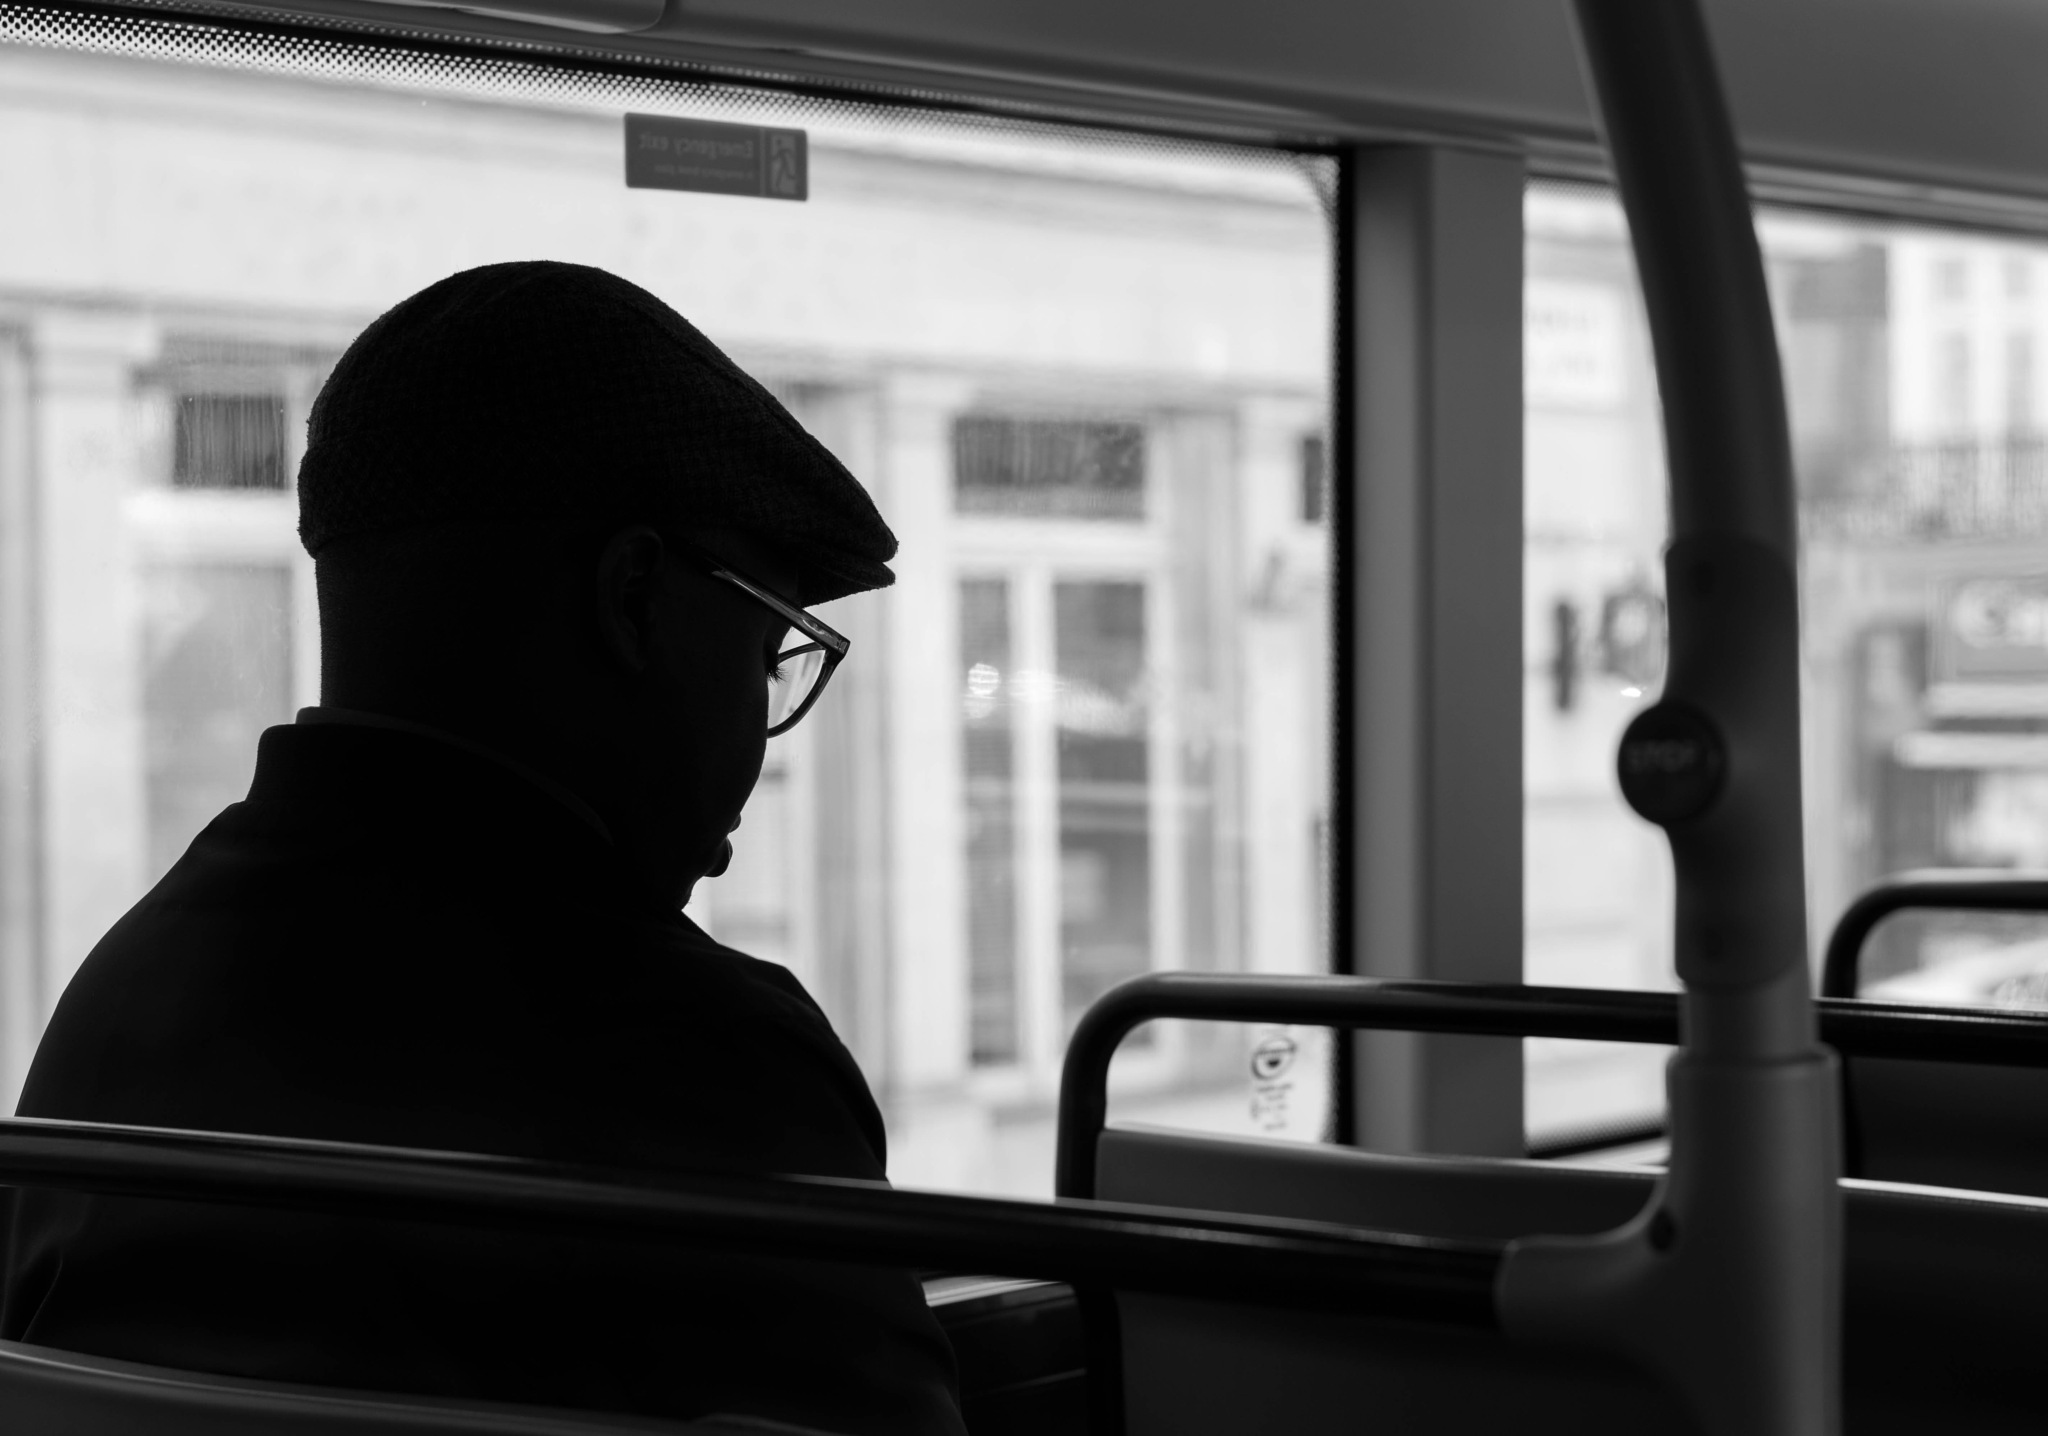 On the bus by Tamara